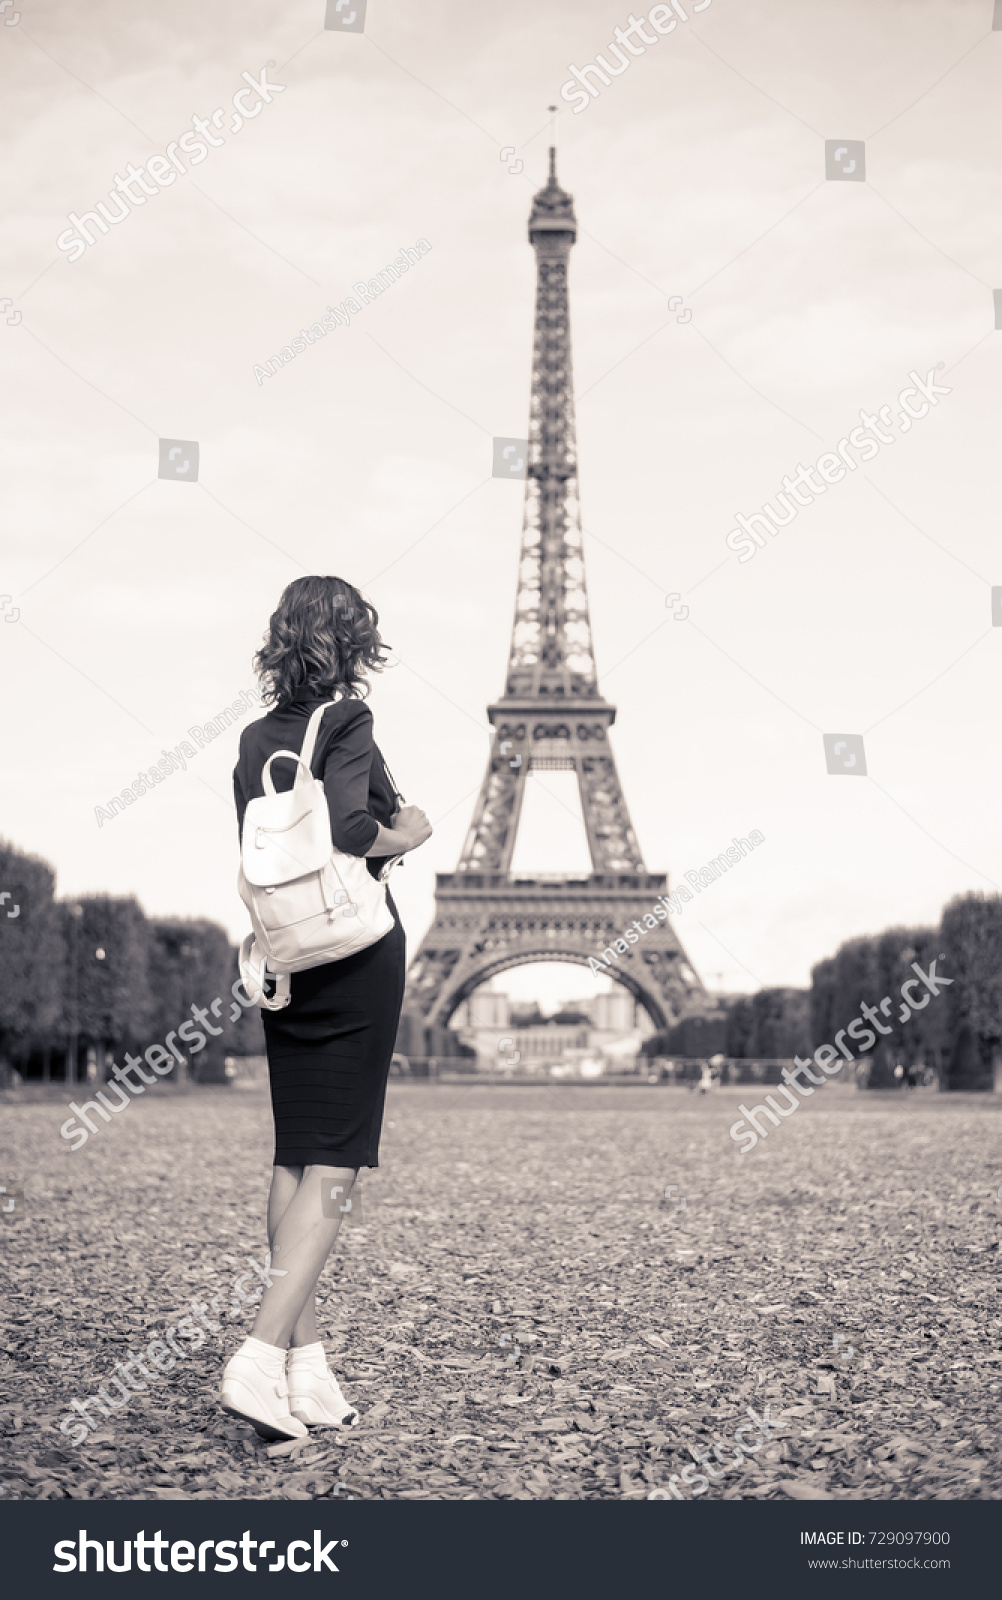 Girl alone near the eiffel tower in paris black and white picture